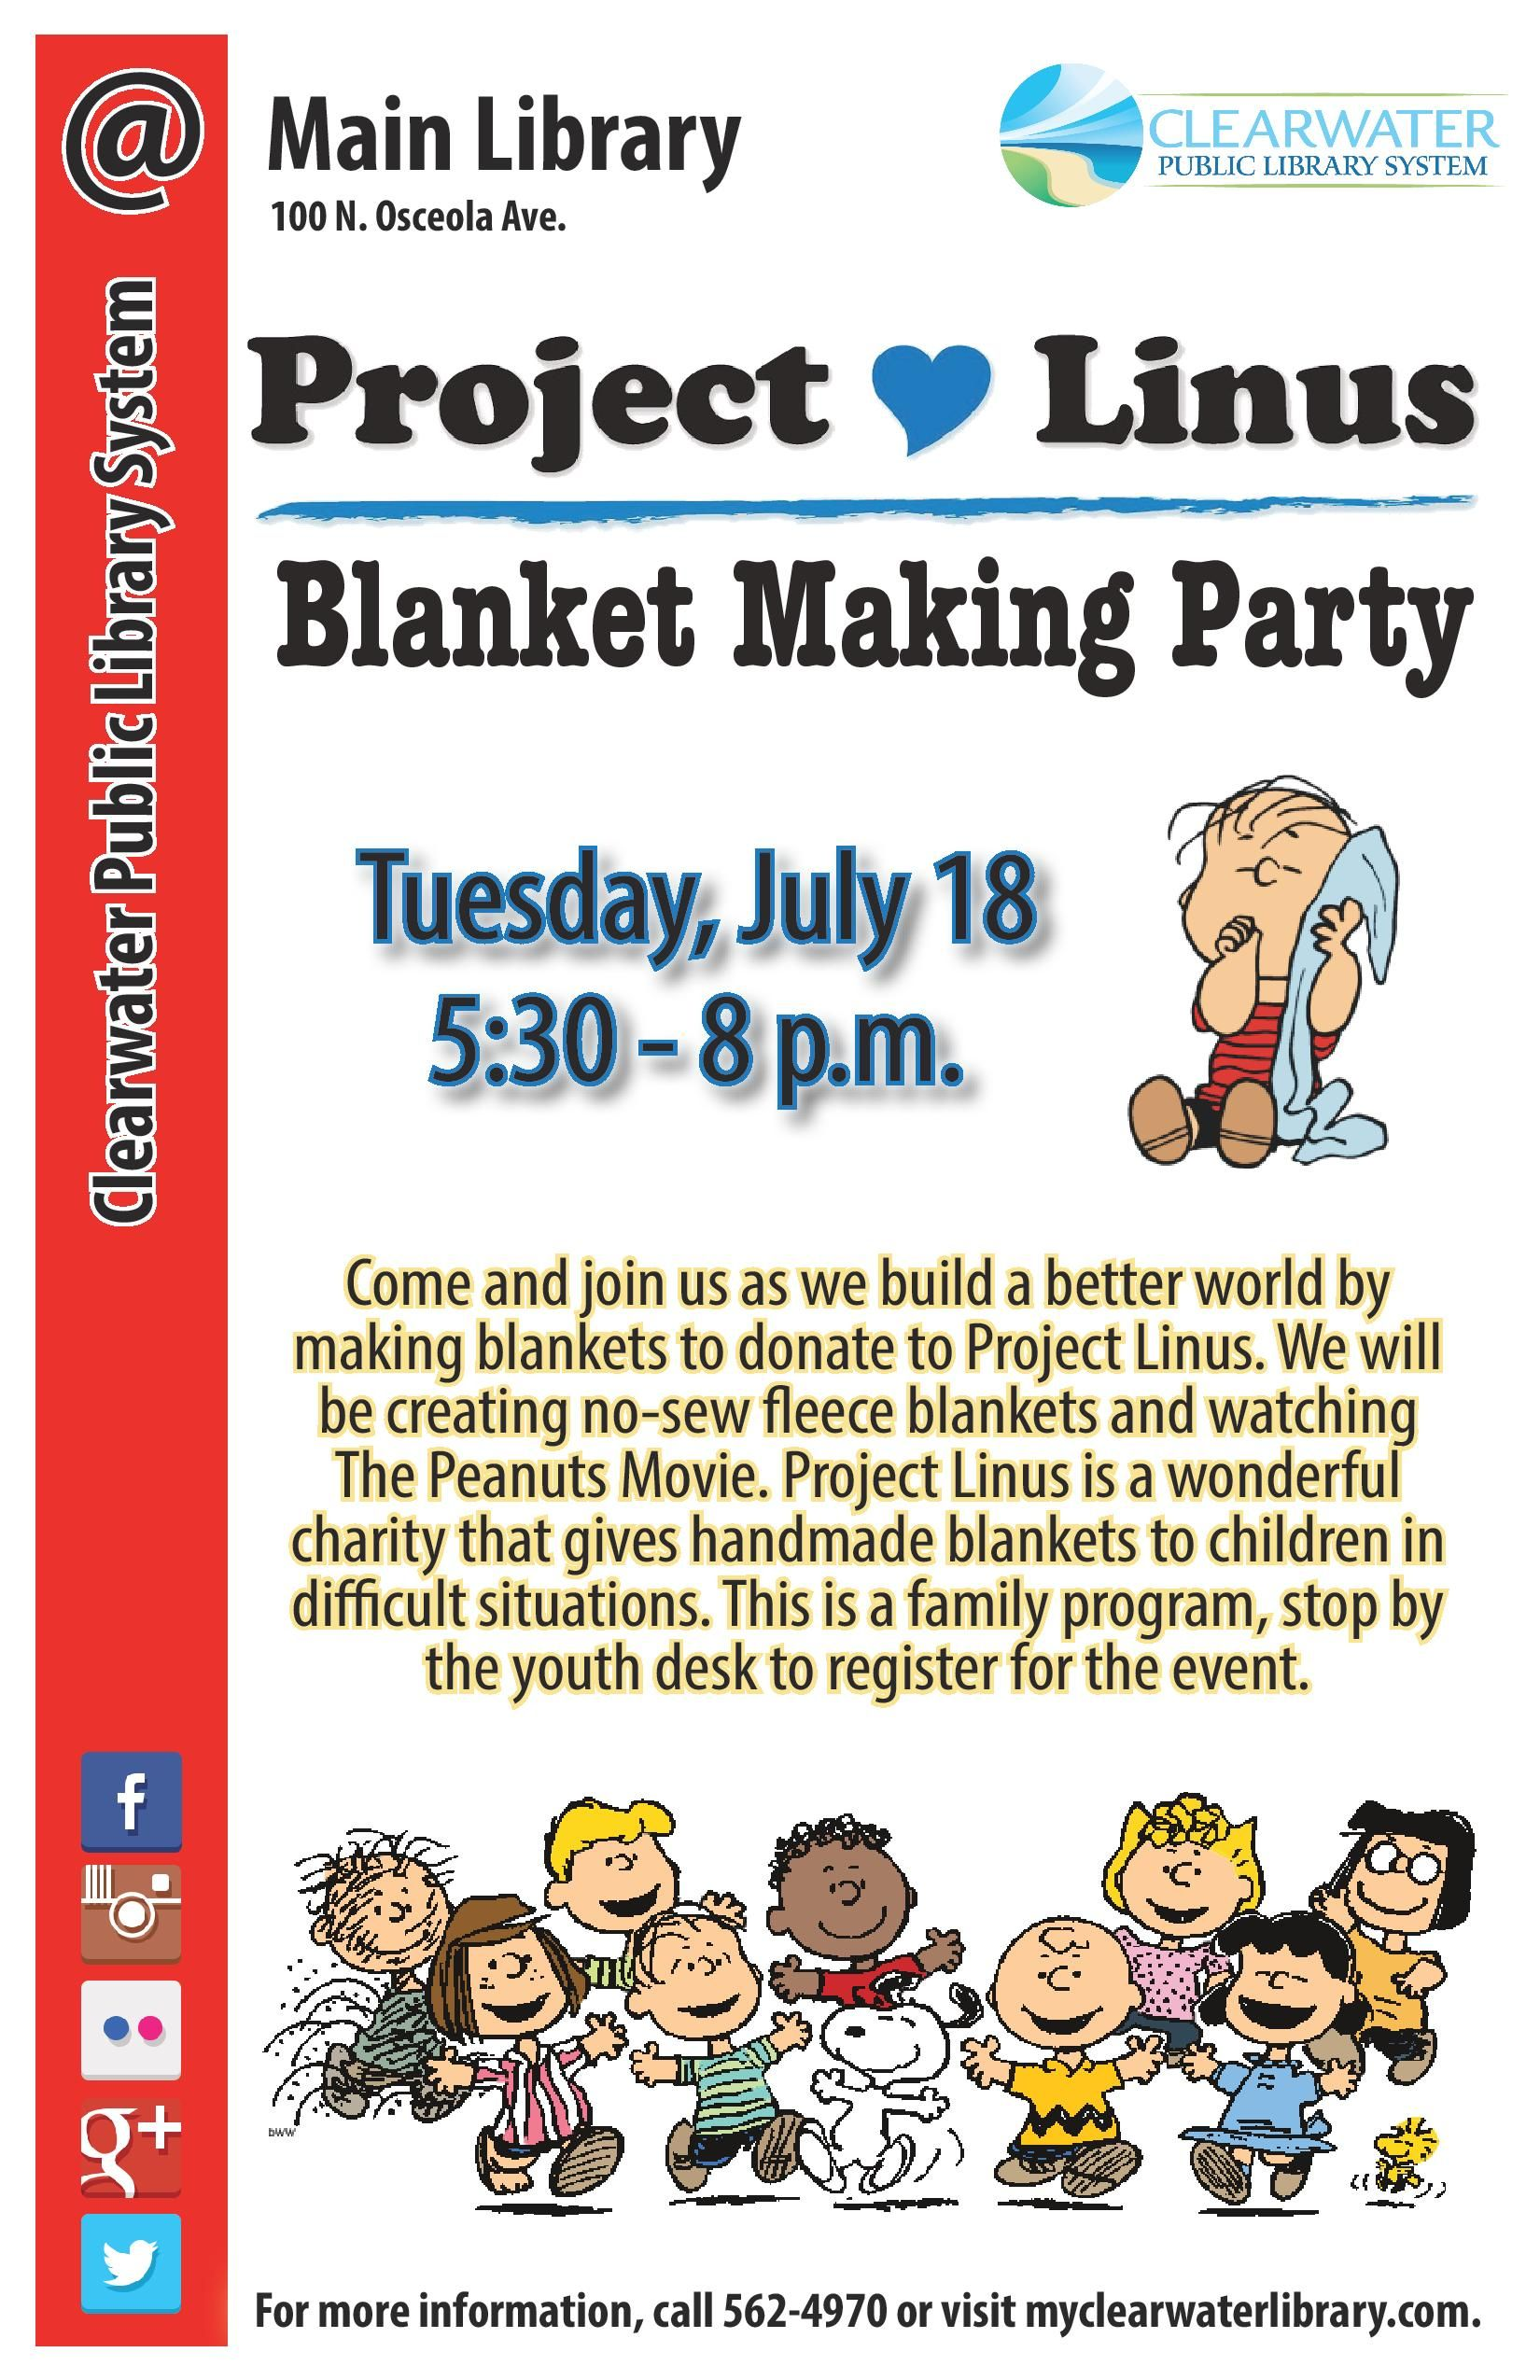 Come And Join Us As We Build A Better World By Making Blankets To